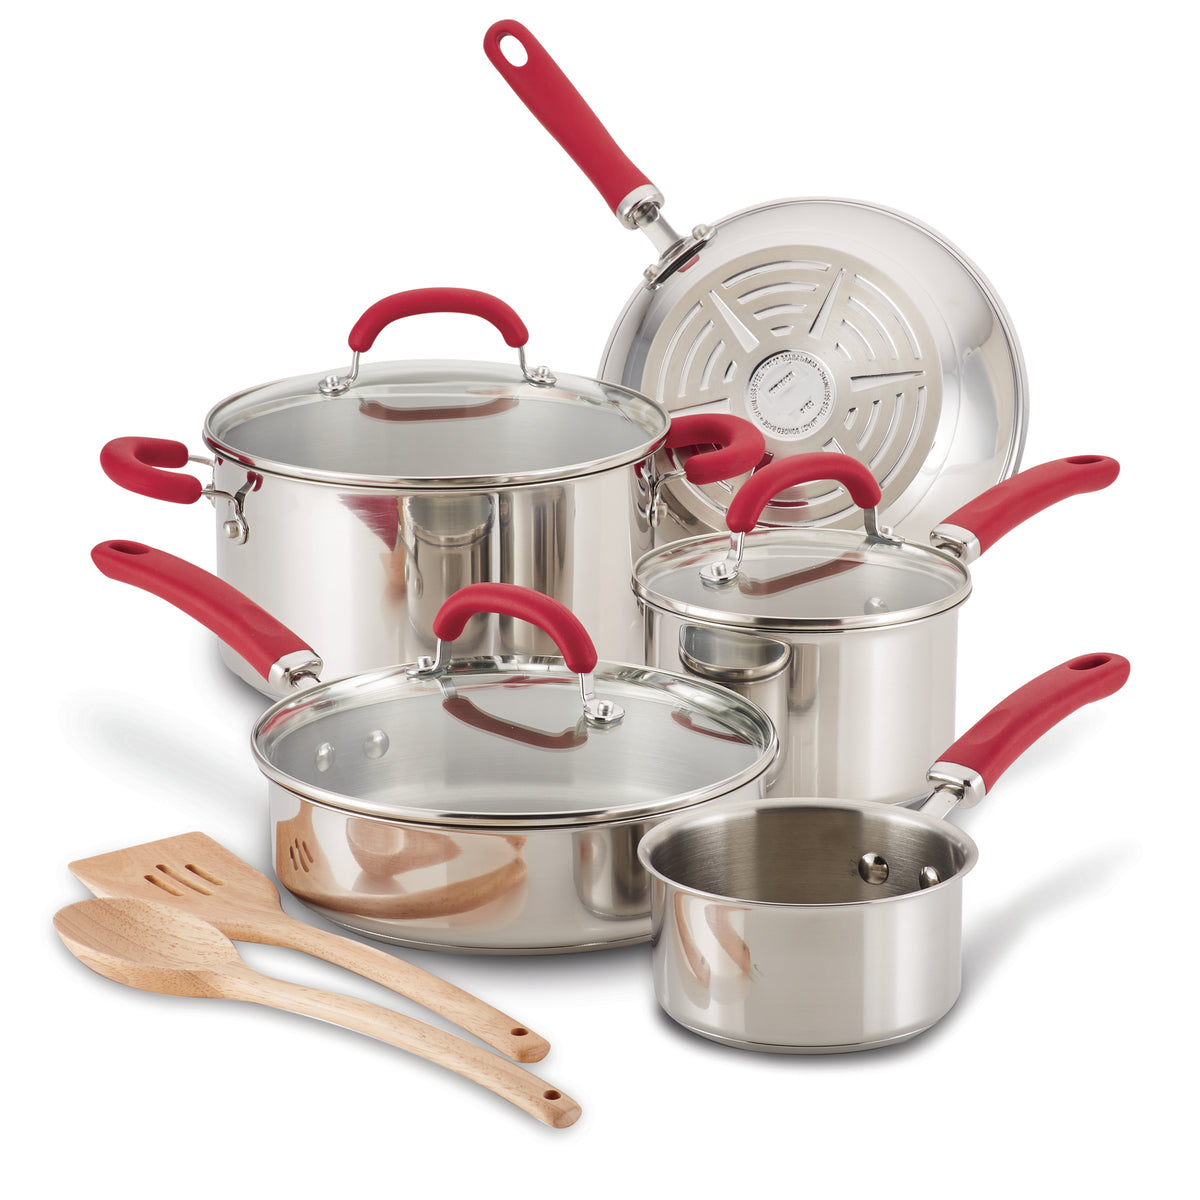 Create Delicious Stainless Steel 10-Piece Cookware Set